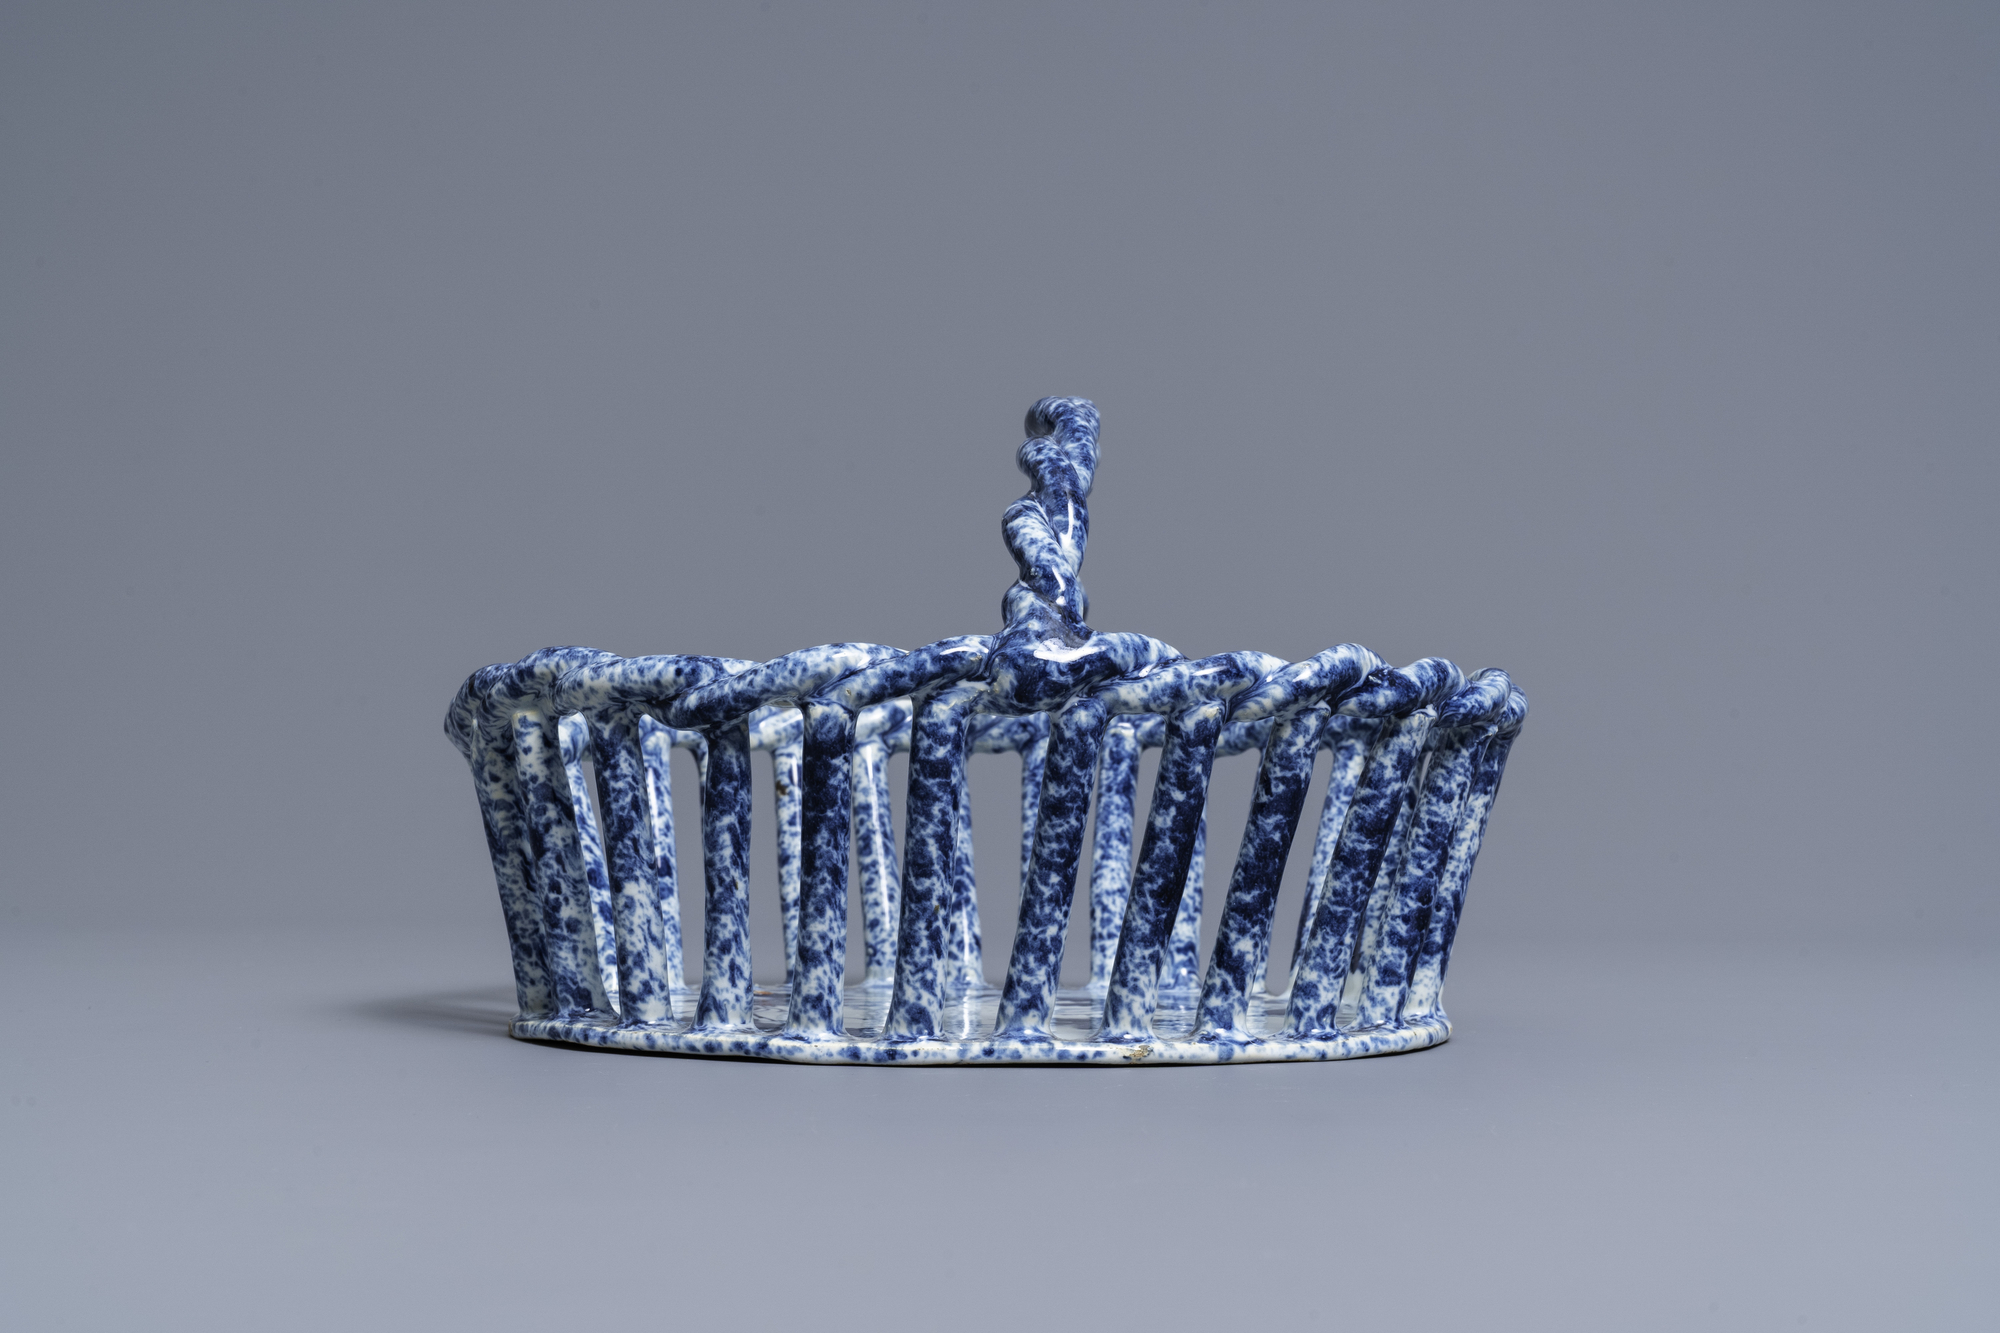 A rare Dutch Delft blue and white reticulated basket, 18th C. - Image 4 of 7